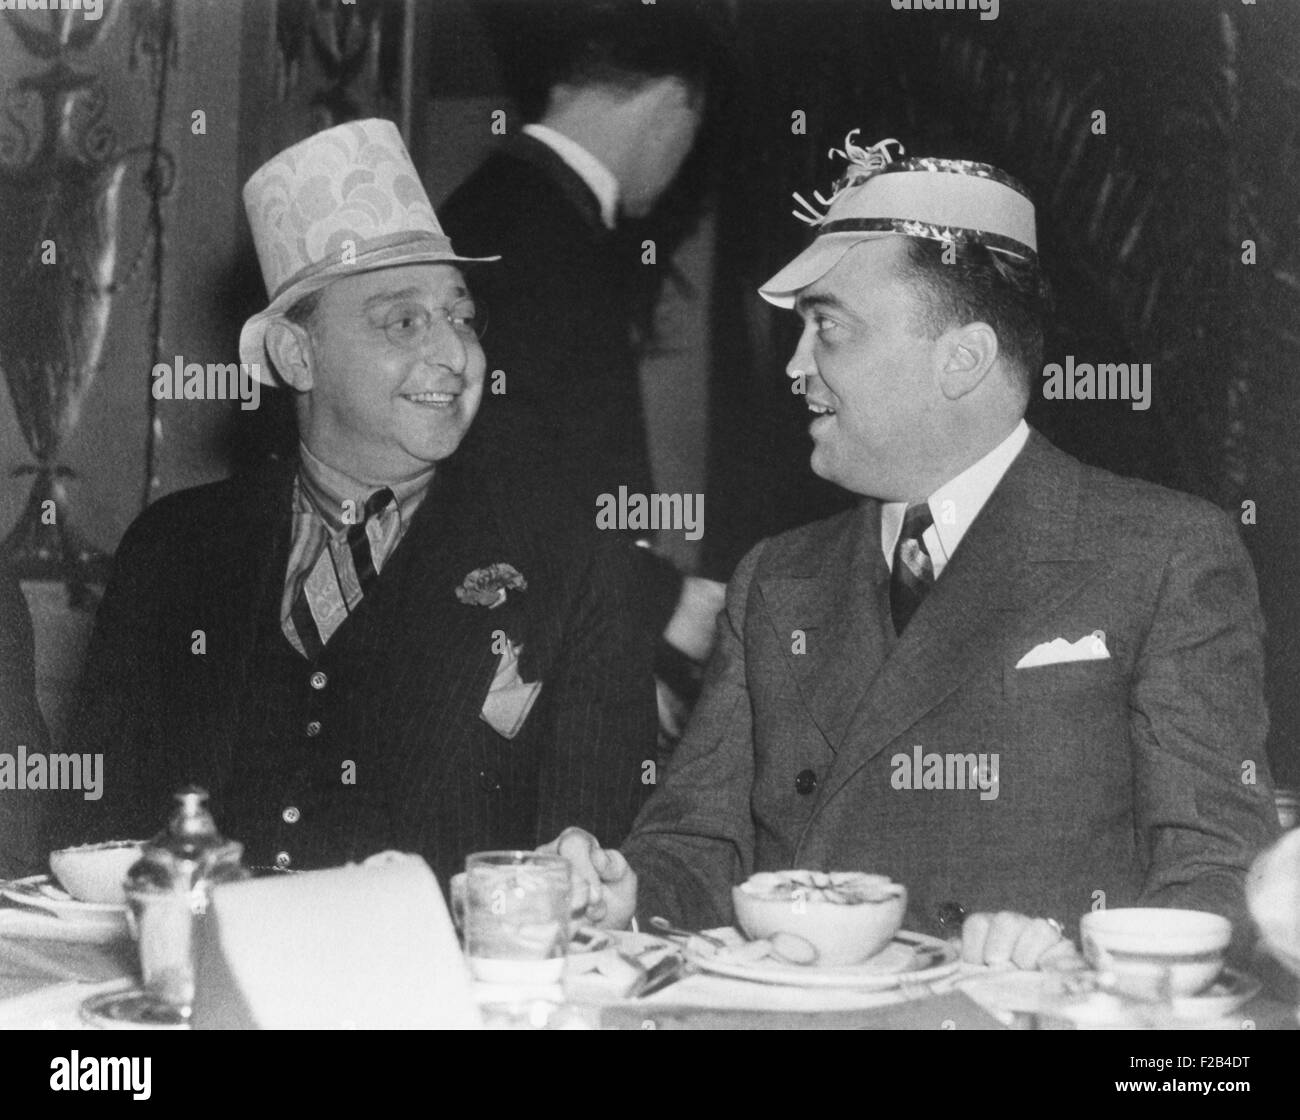 J. Edgar Hoover and Julius Lulley enjoying a festive breakfast at Washington's Mayflower Hotel. Ca. 1935. Julius - Stock Image